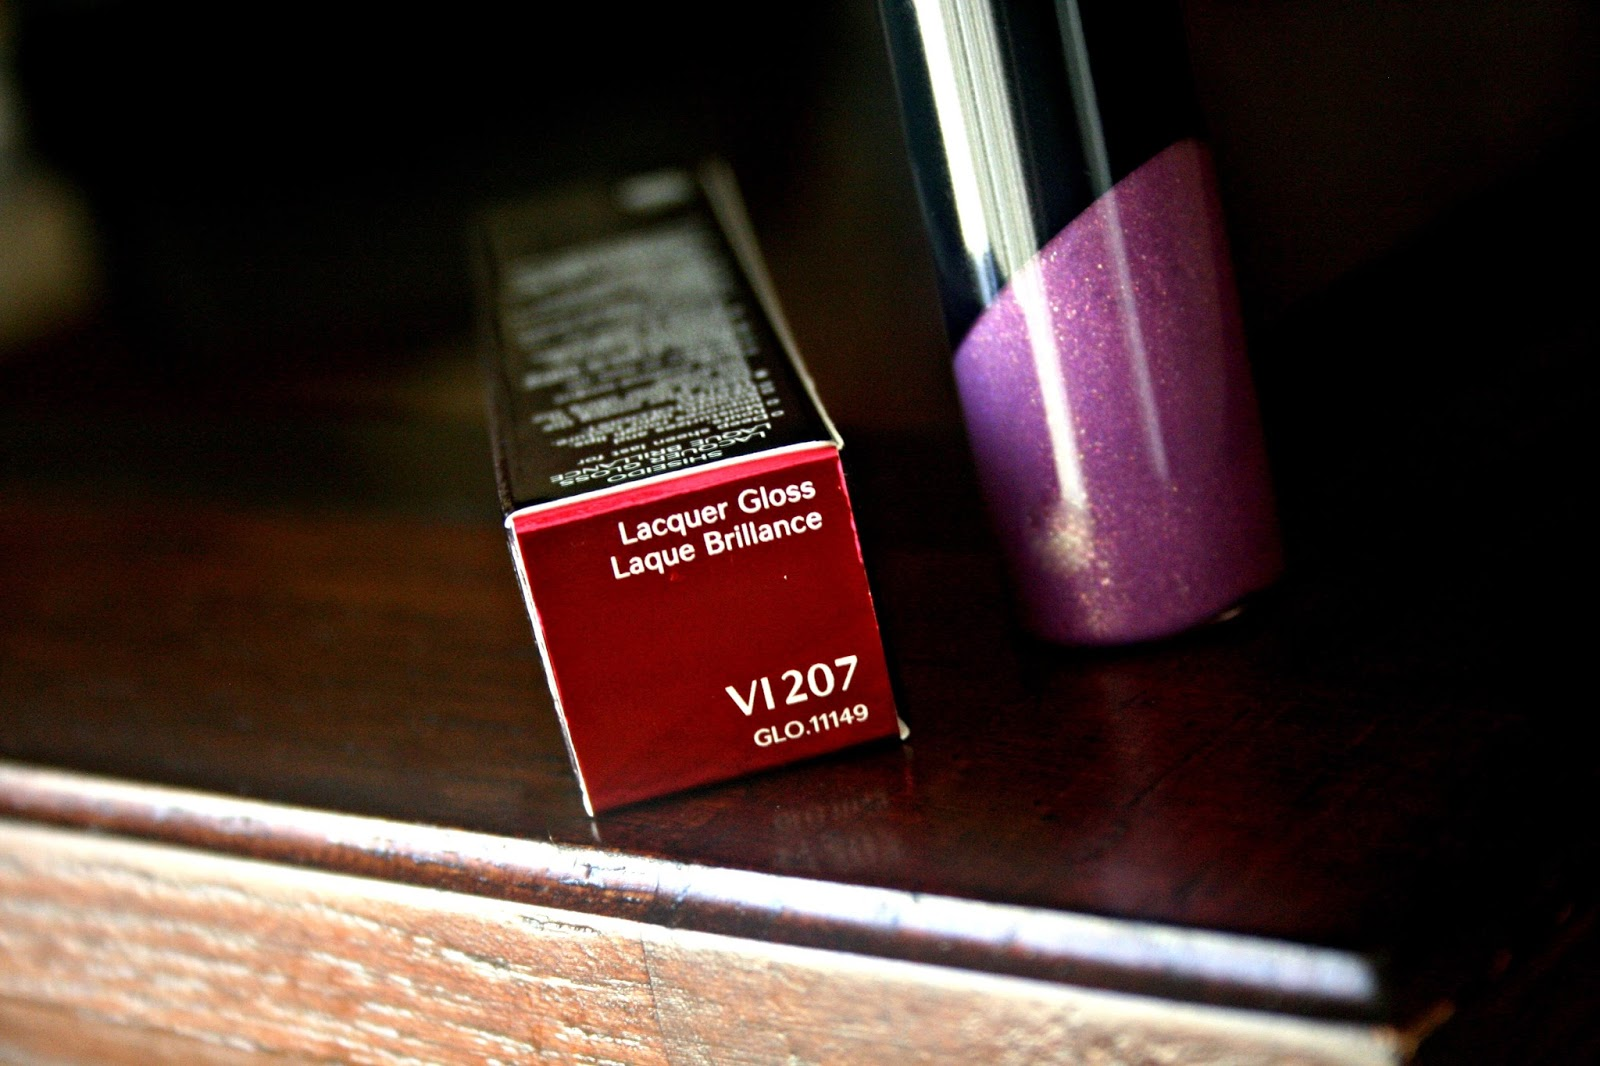 Shiseido Lacquer Gloss in VI207 Nebula Shiseido Spring 2014 Review, Photos & Swatches